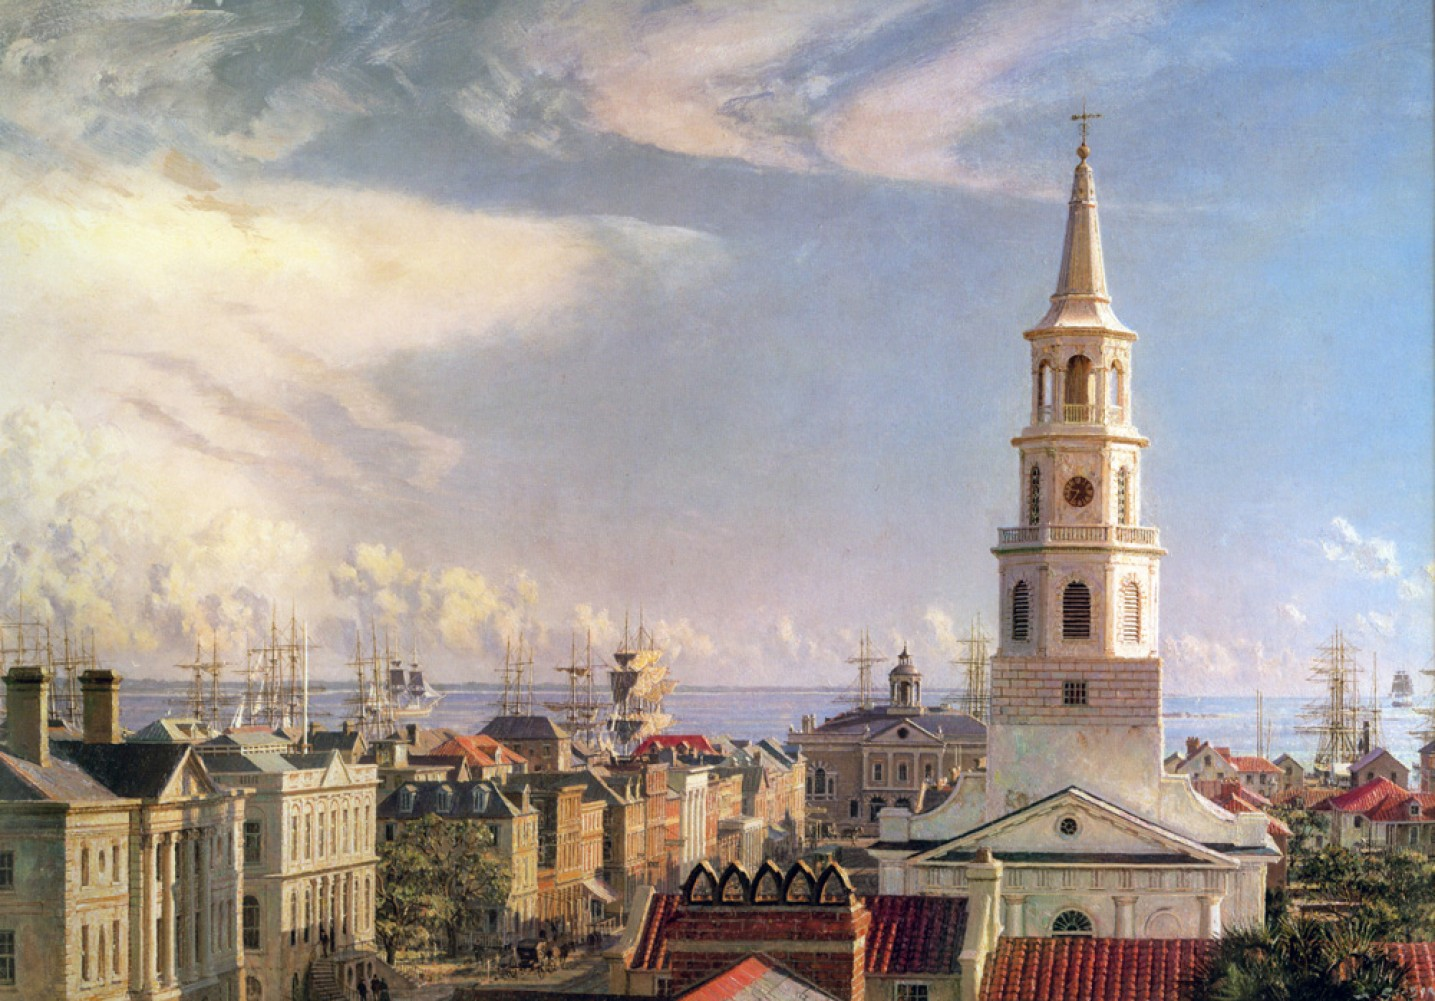 Charleston Over the Rooftops in 1870